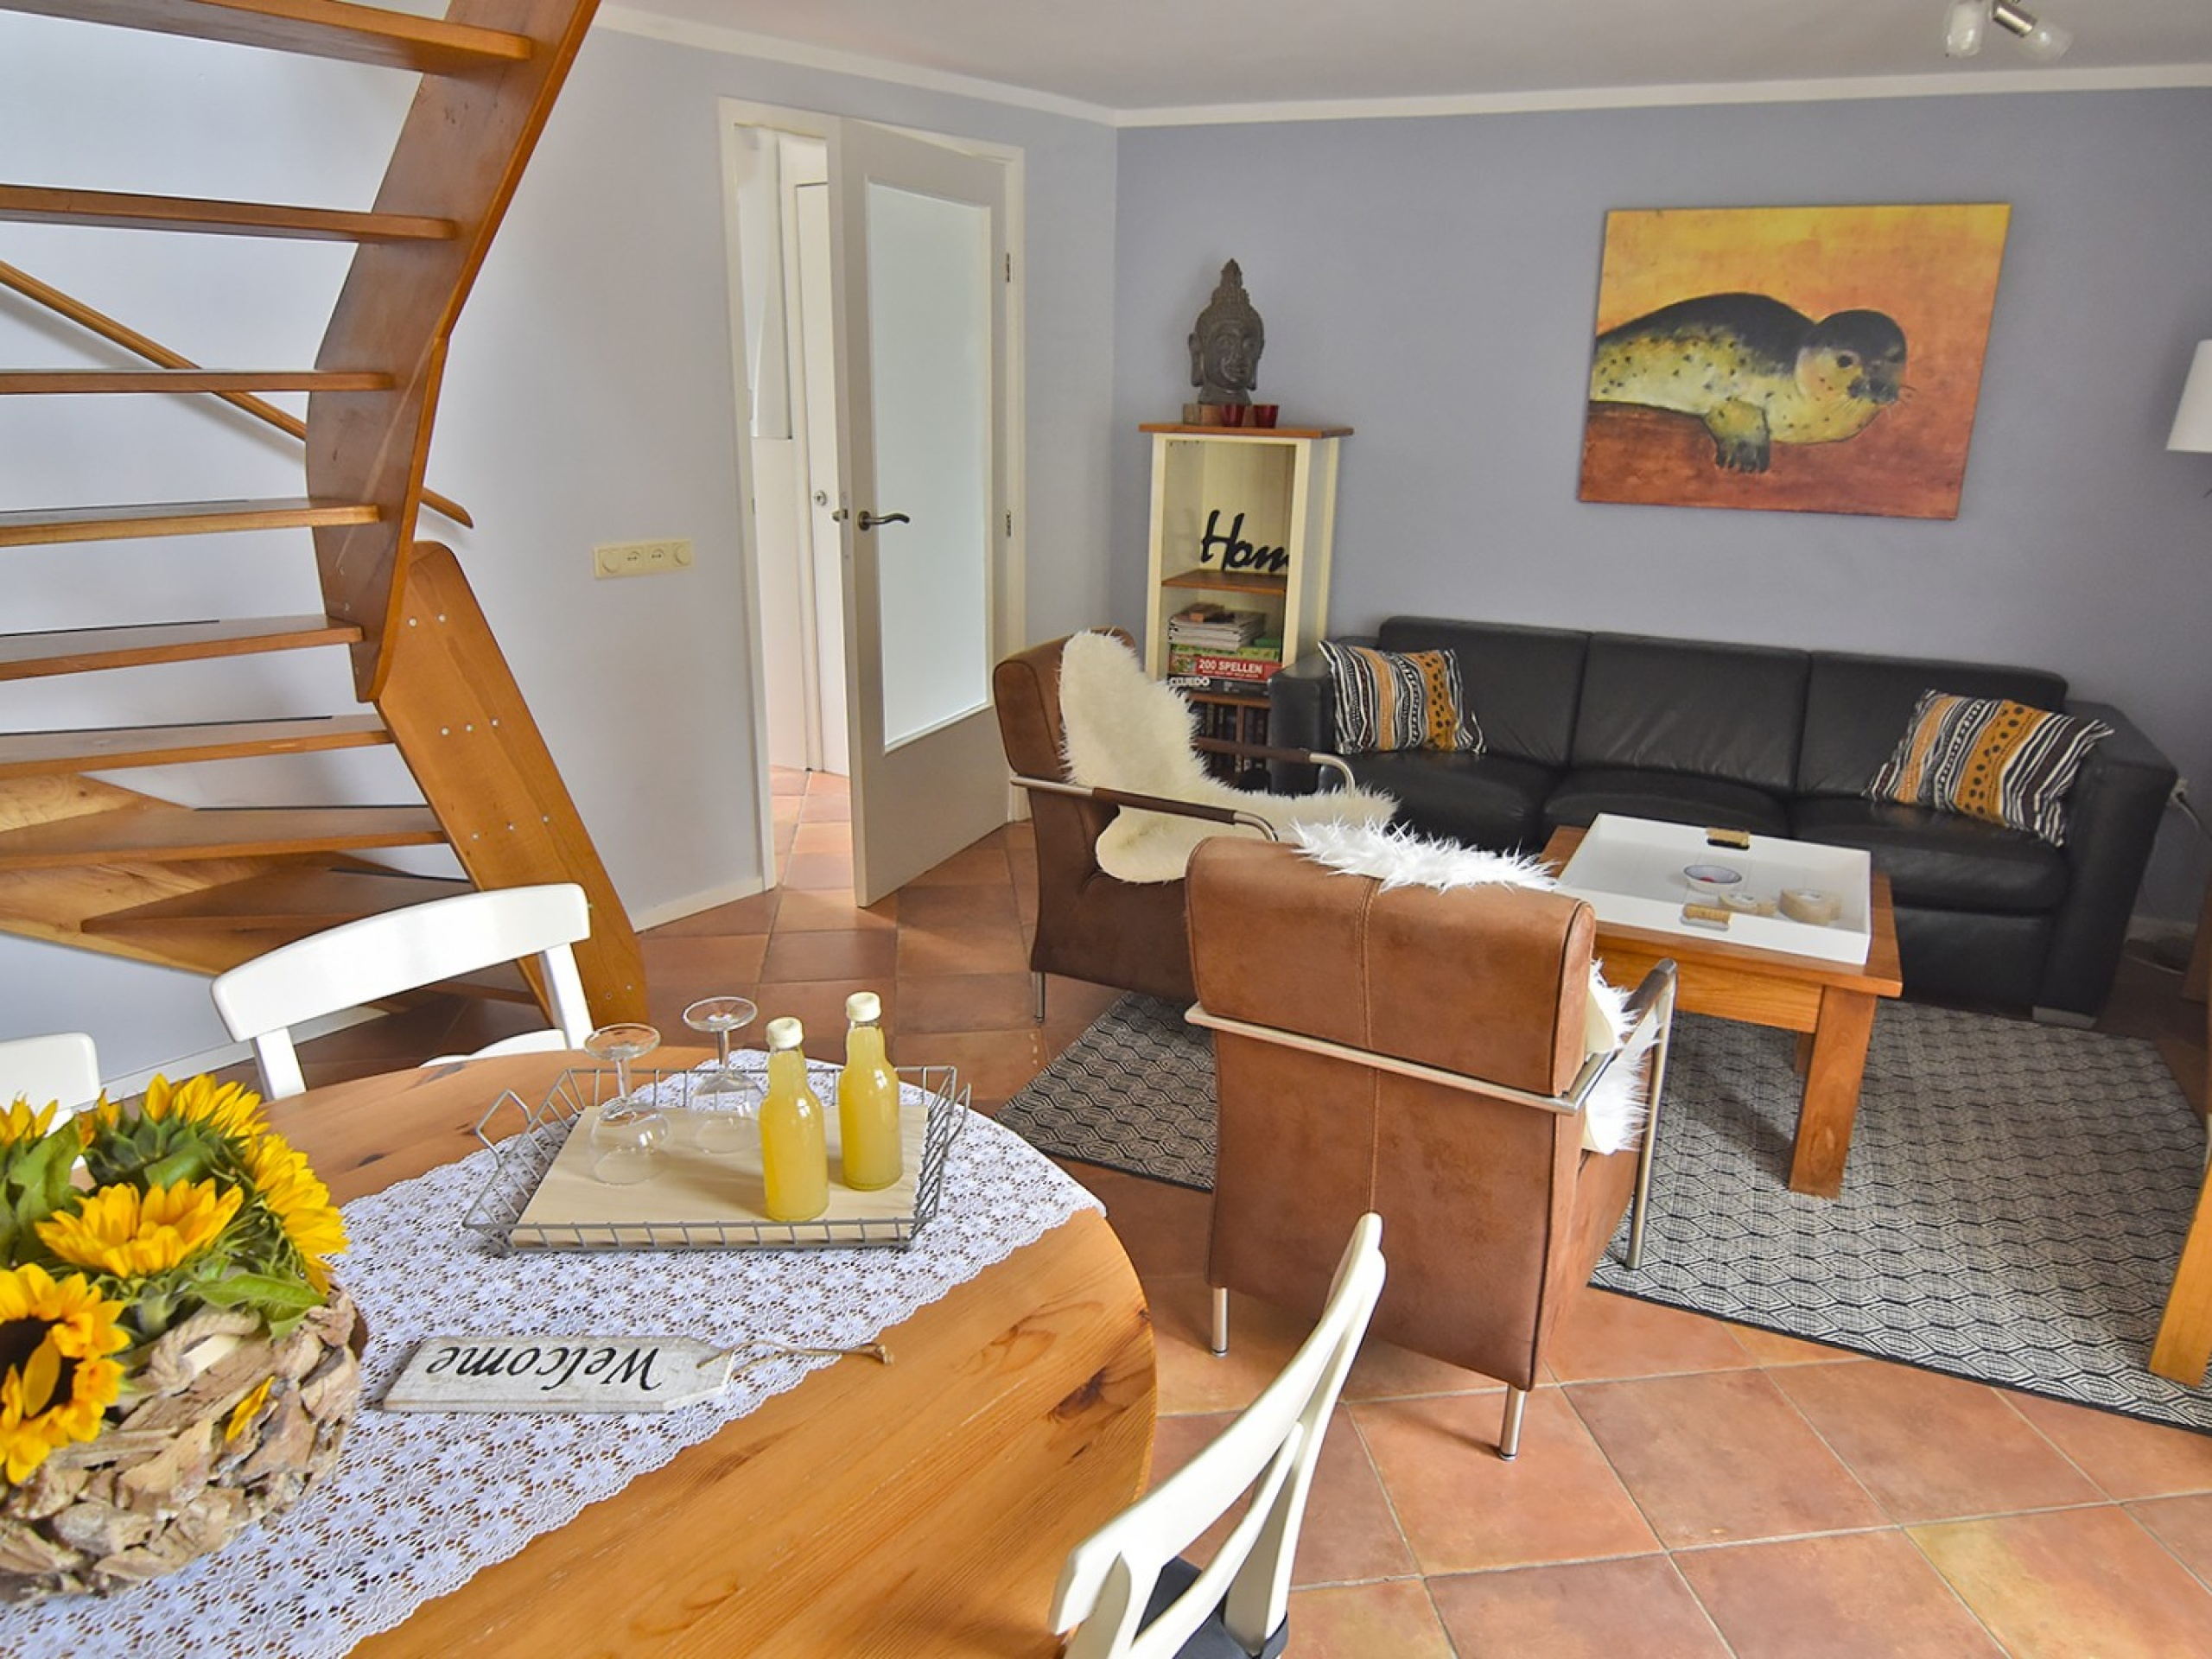 Cosy holiday home within walking distance of the beach in De Koog